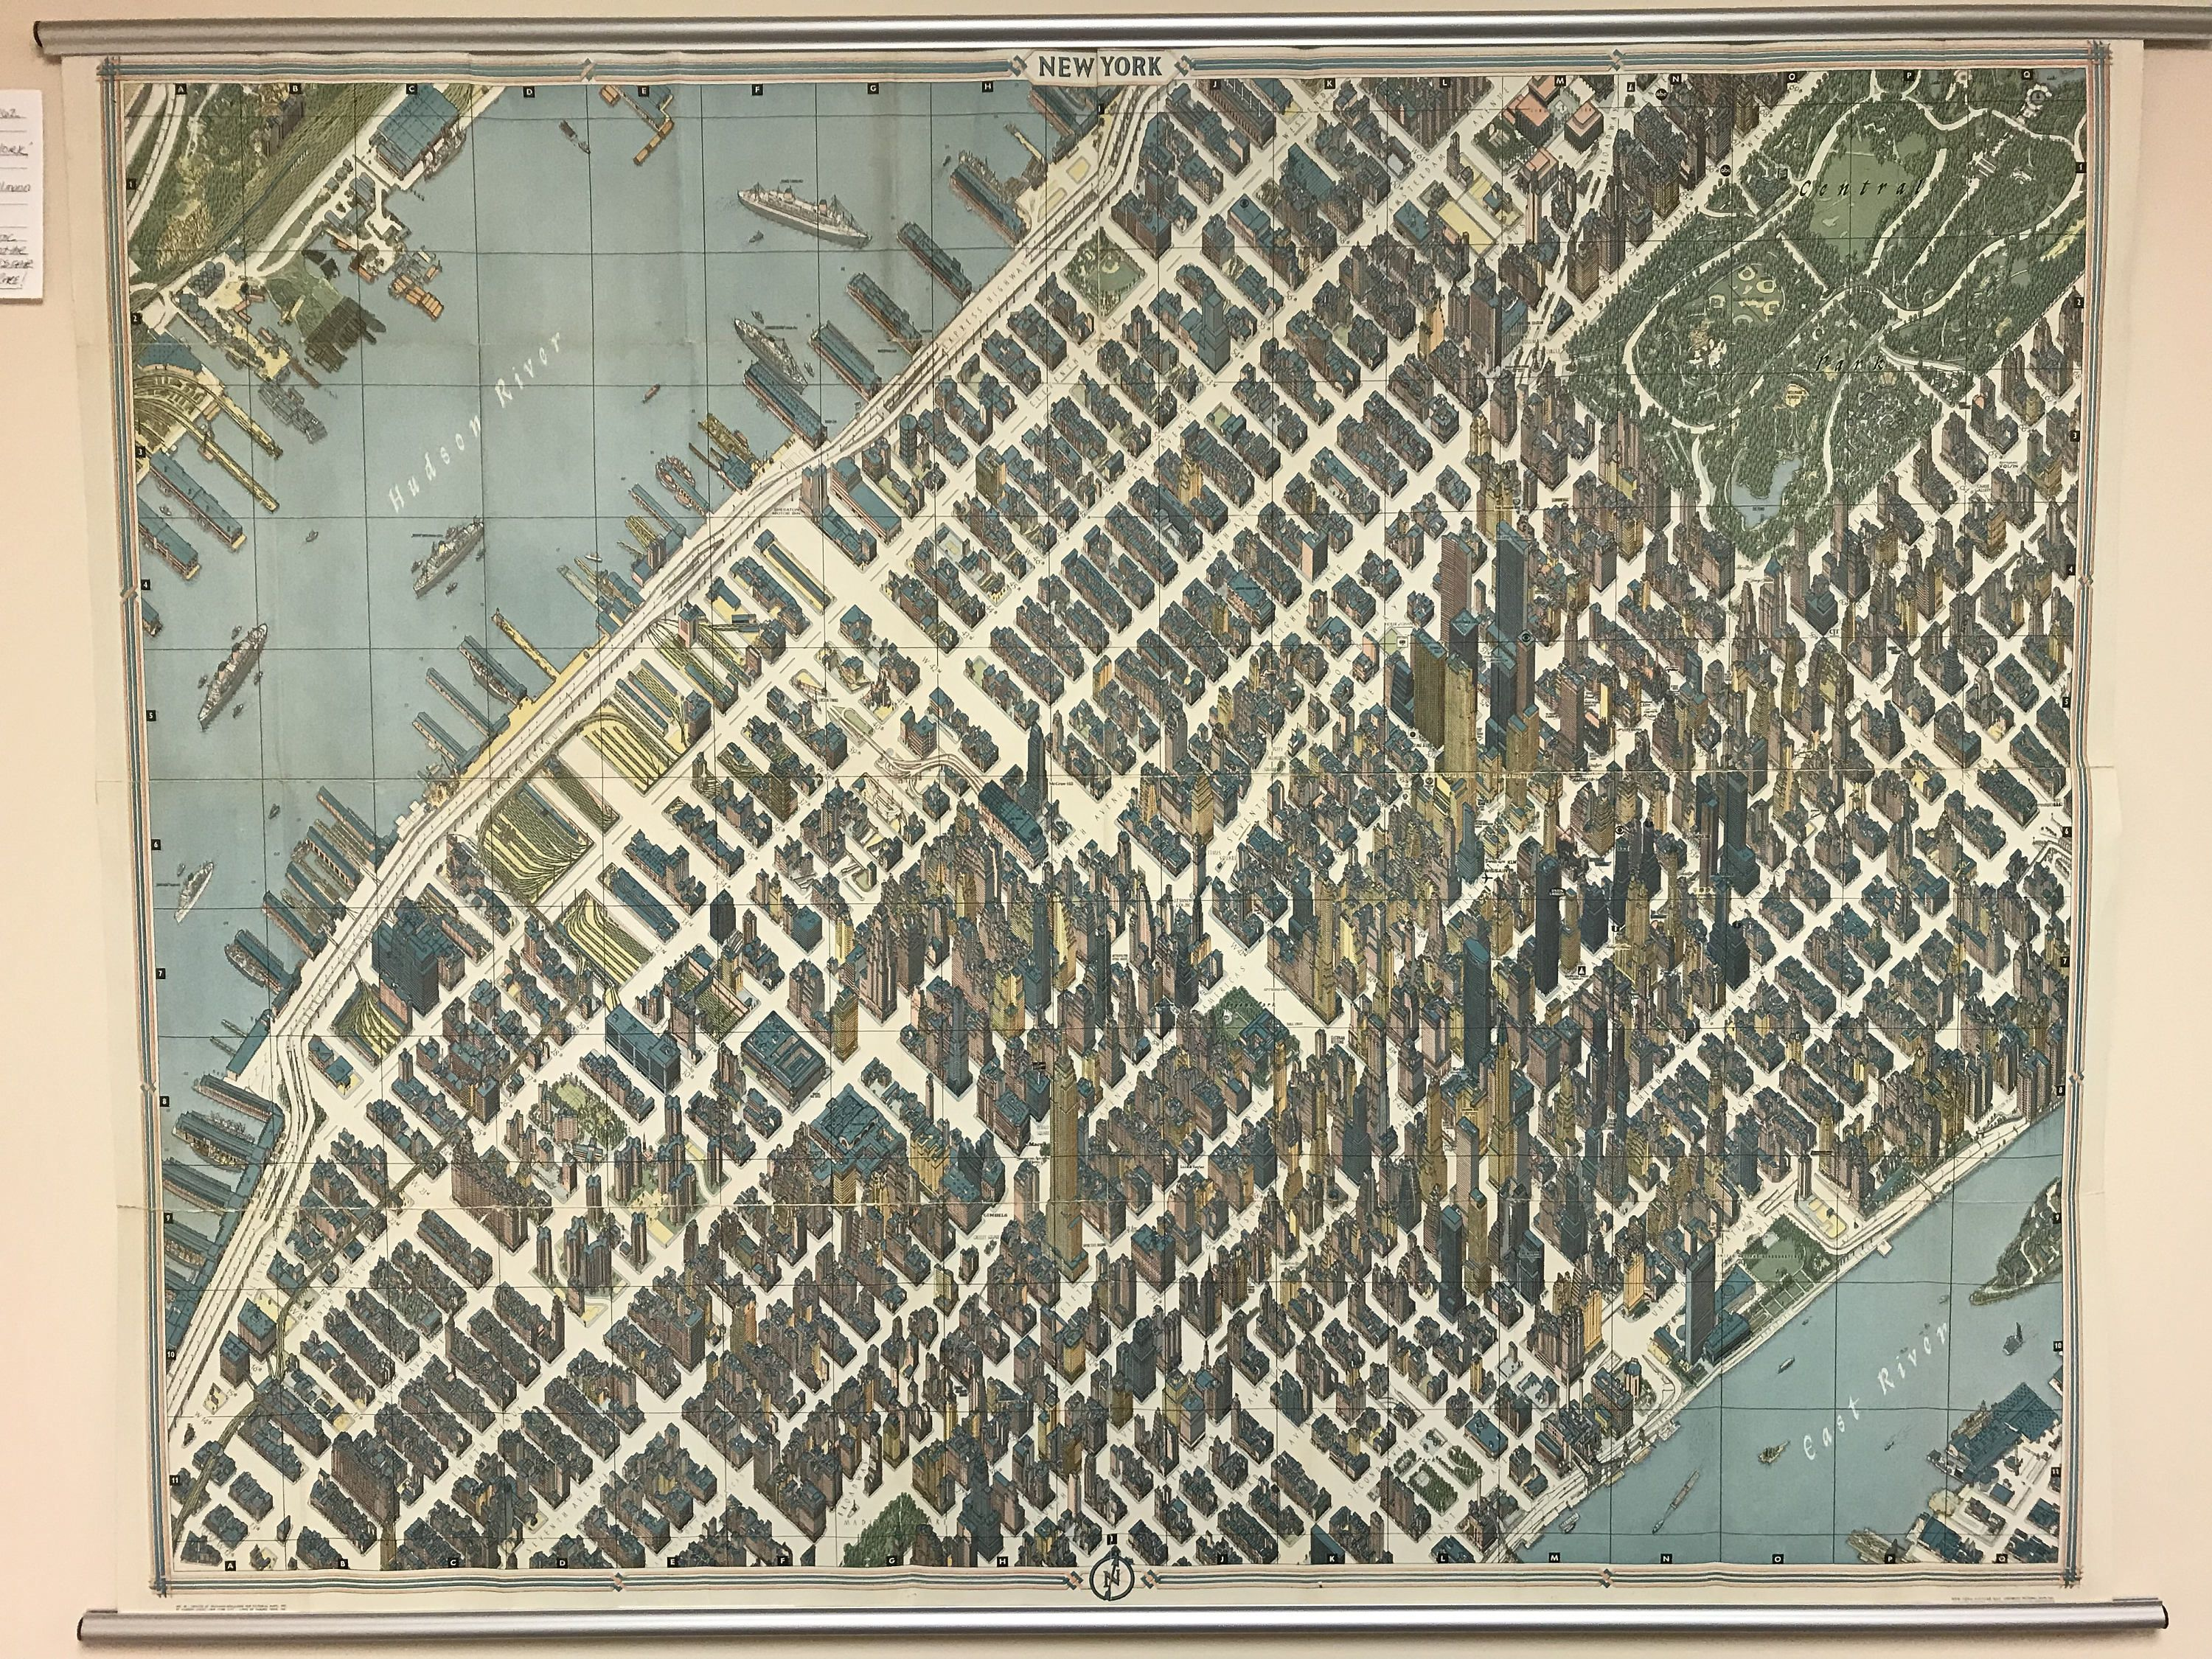 Map Of New York For Sale.1963 Herman Bollmann View And Map Of New York City